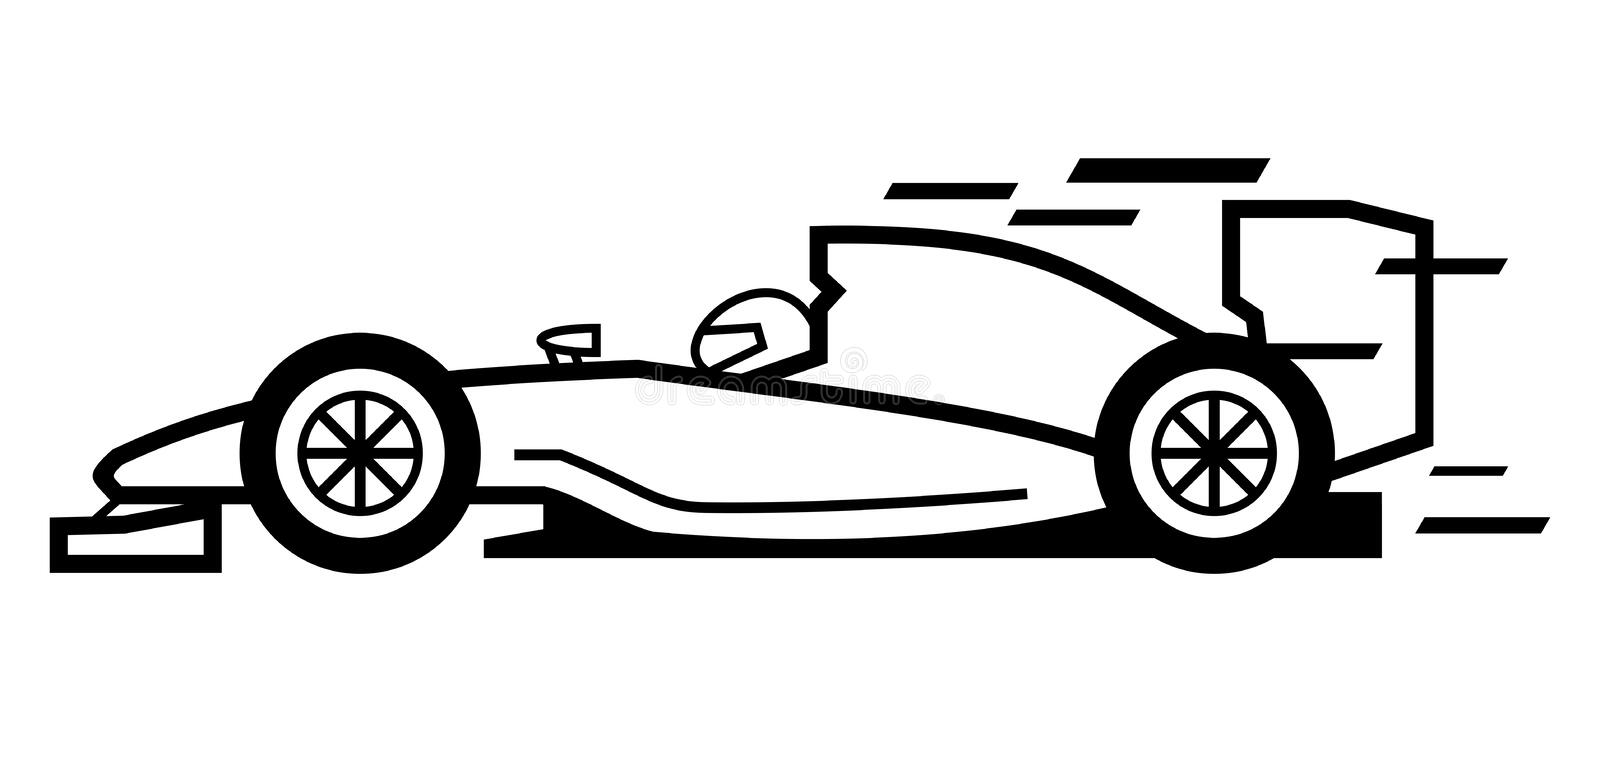 Formule 1 illustration de vecteur